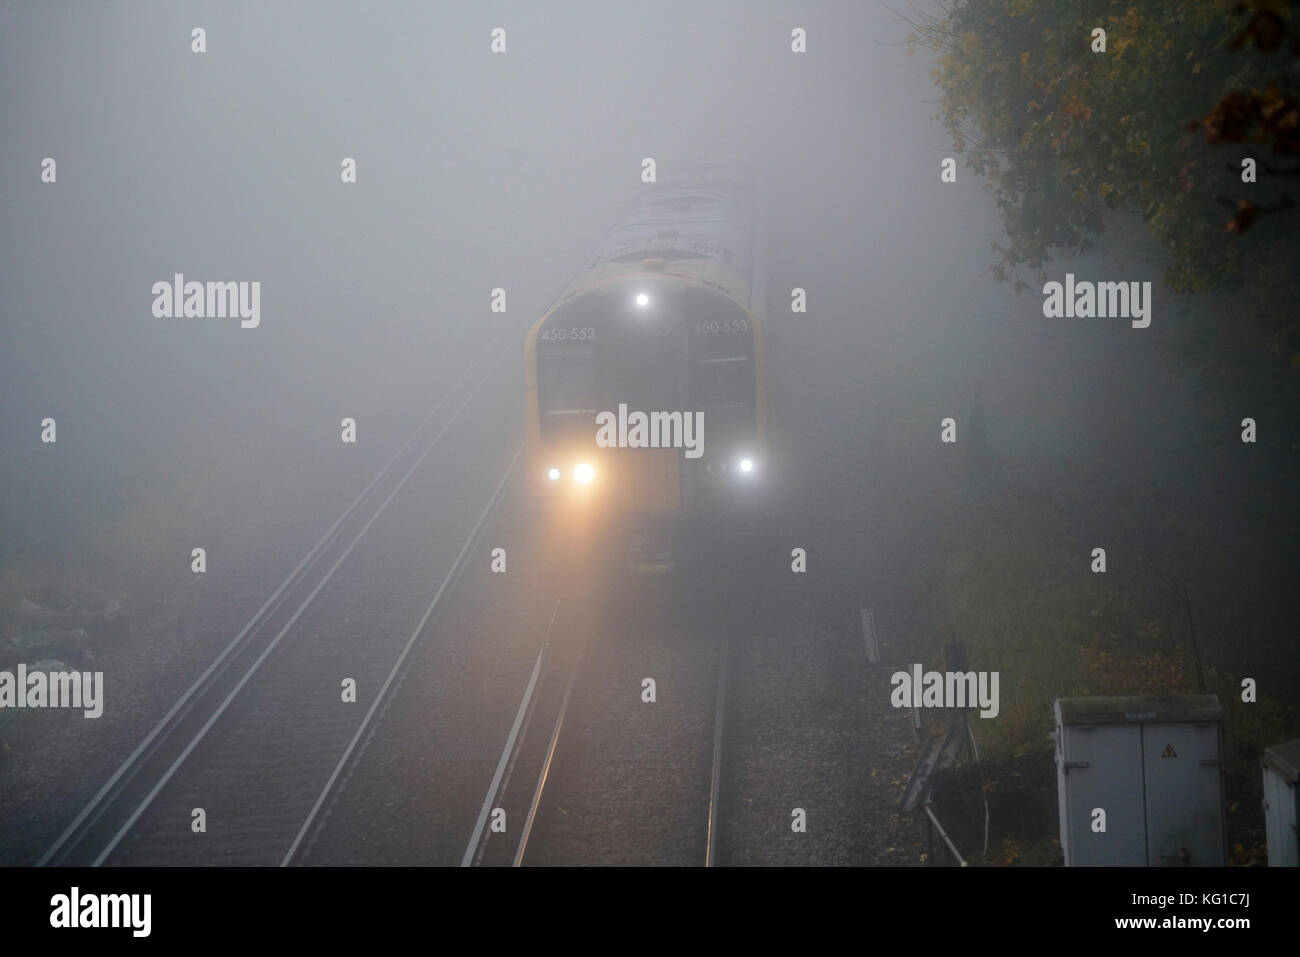 Station Lane, Milford. 2nd Nov, 2017. UK Weather. High pressure anticyclonic conditions caused overnight temperatures - Stock Image